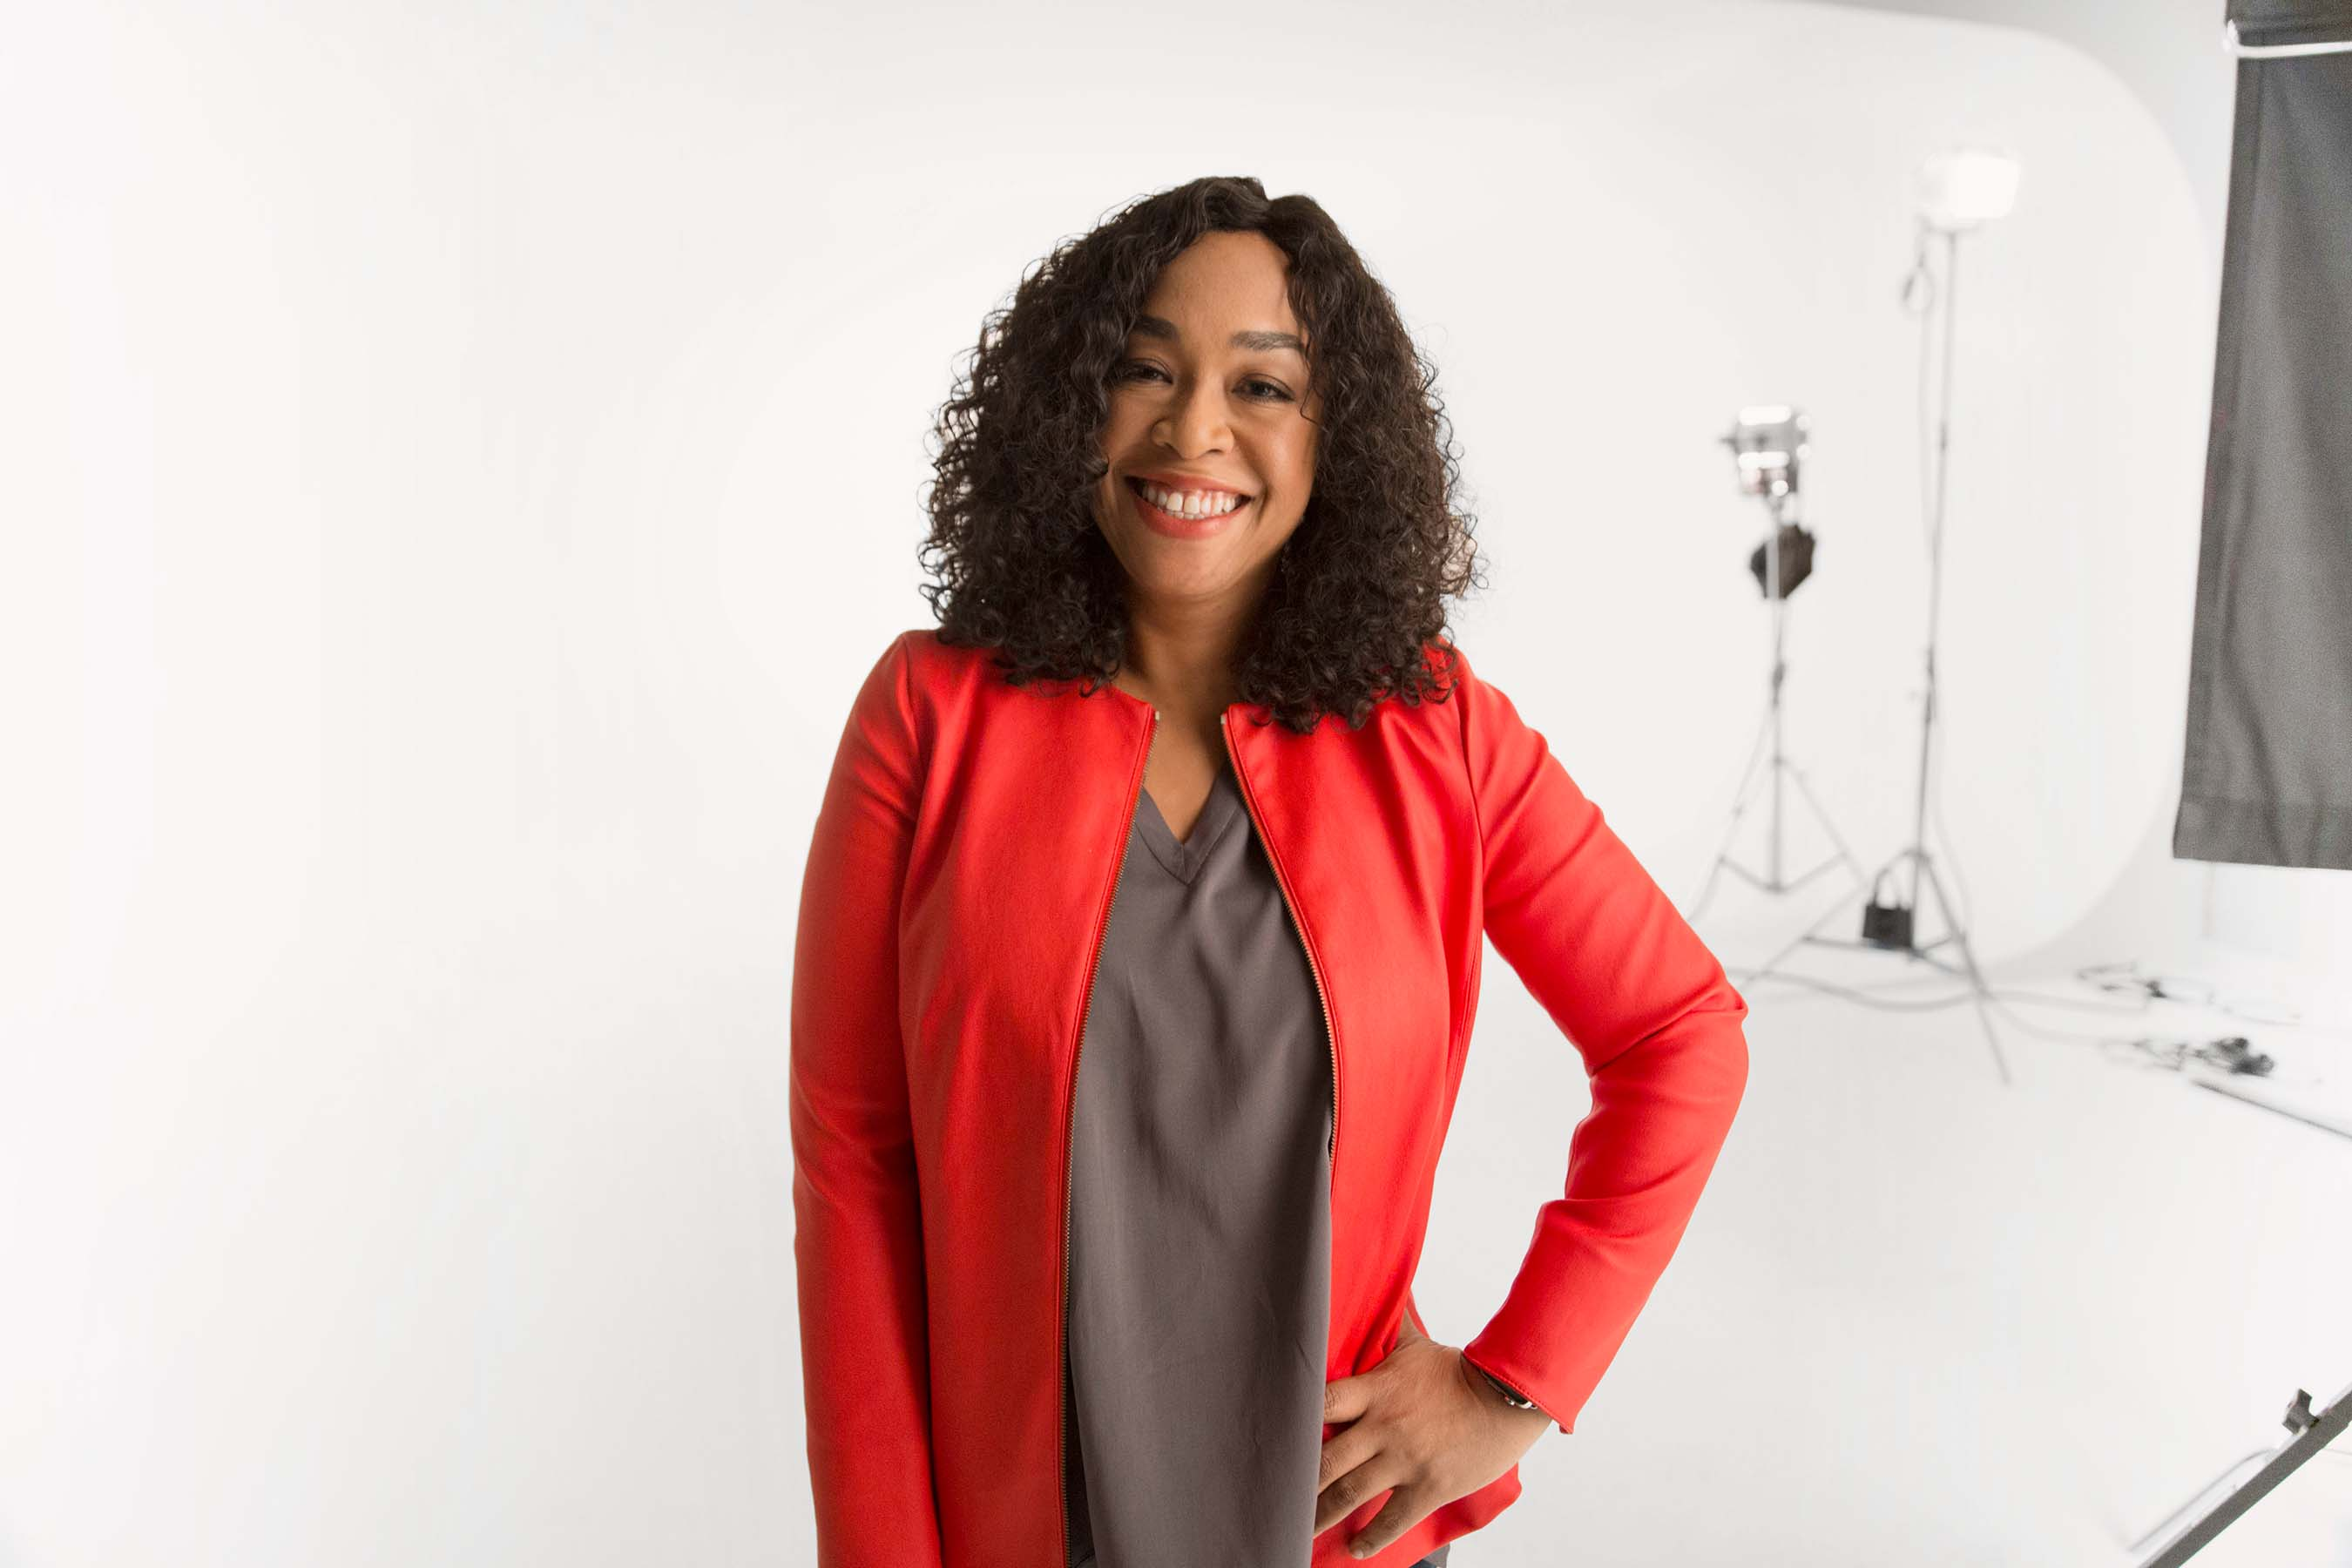 Shonda Rhimes partners with Dove to bring #RealBeauty stories to life on screens everywhere